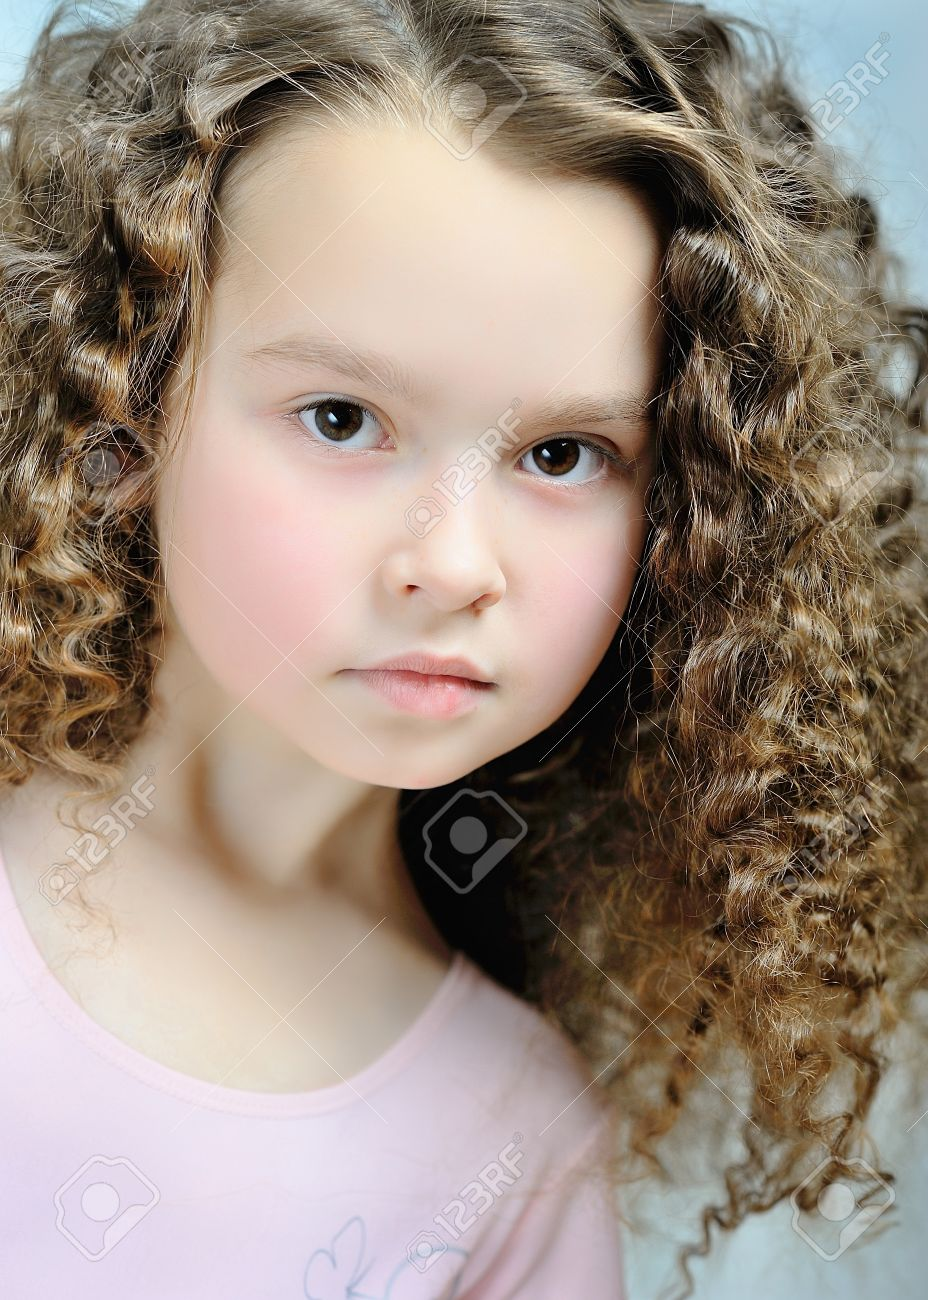 portrait of a beautiful little girl with curls Stock Photo - 12923001